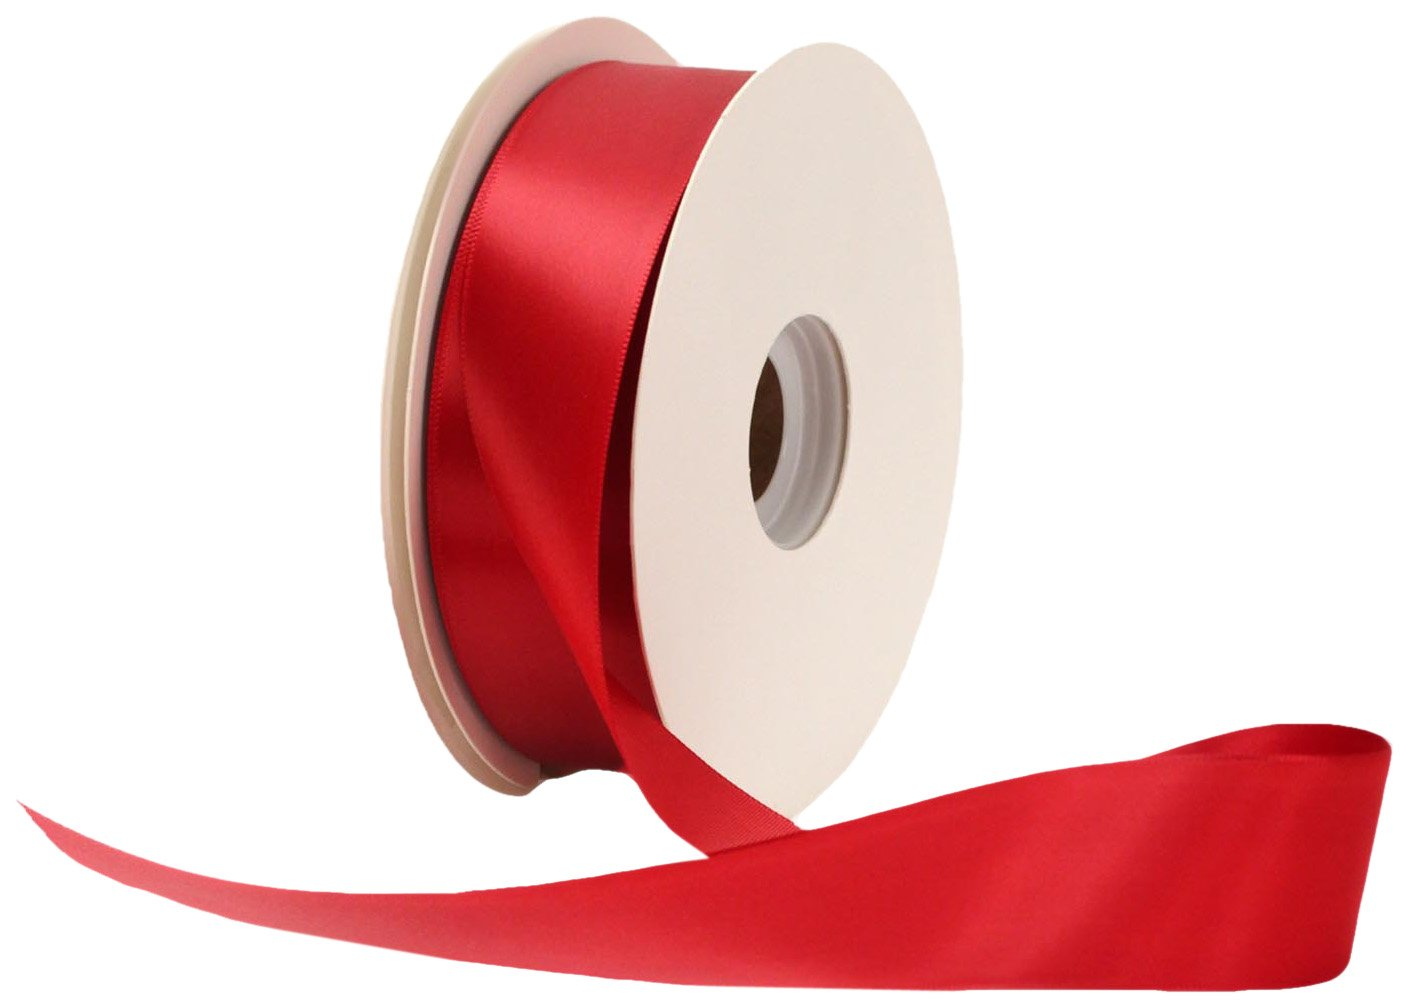 Offray Single Face Satin Craft 1 1/2-Inch by 50-Yard Ribbon Spool, Sherry 249130